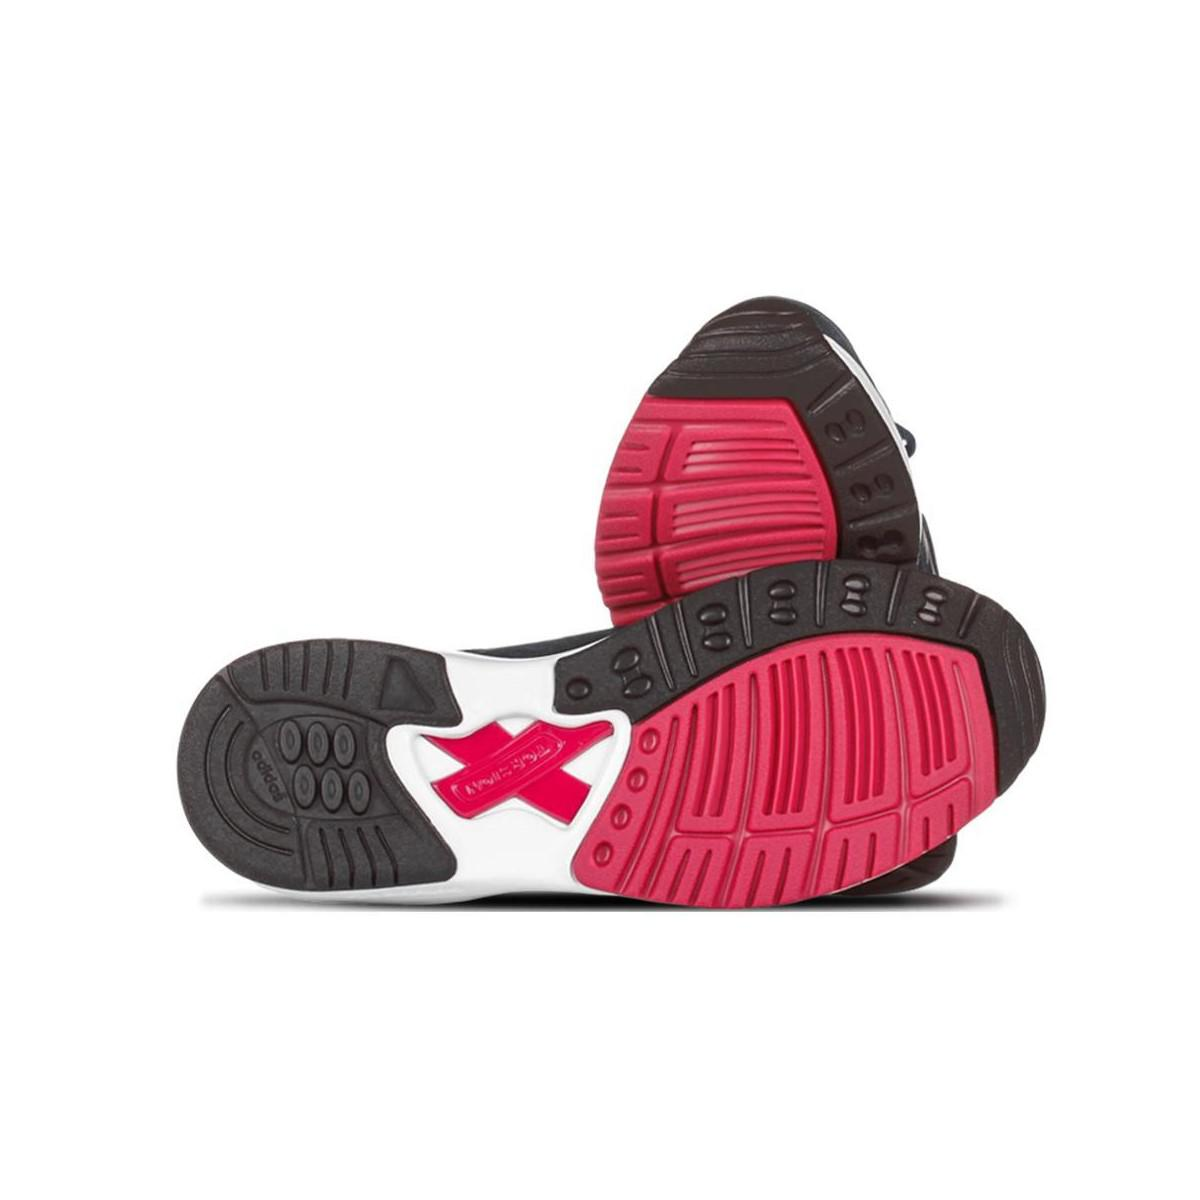 adidas Torsion Allegra Women s Shoes (trainers) In Pink in Pink - Lyst 563cde6225cd